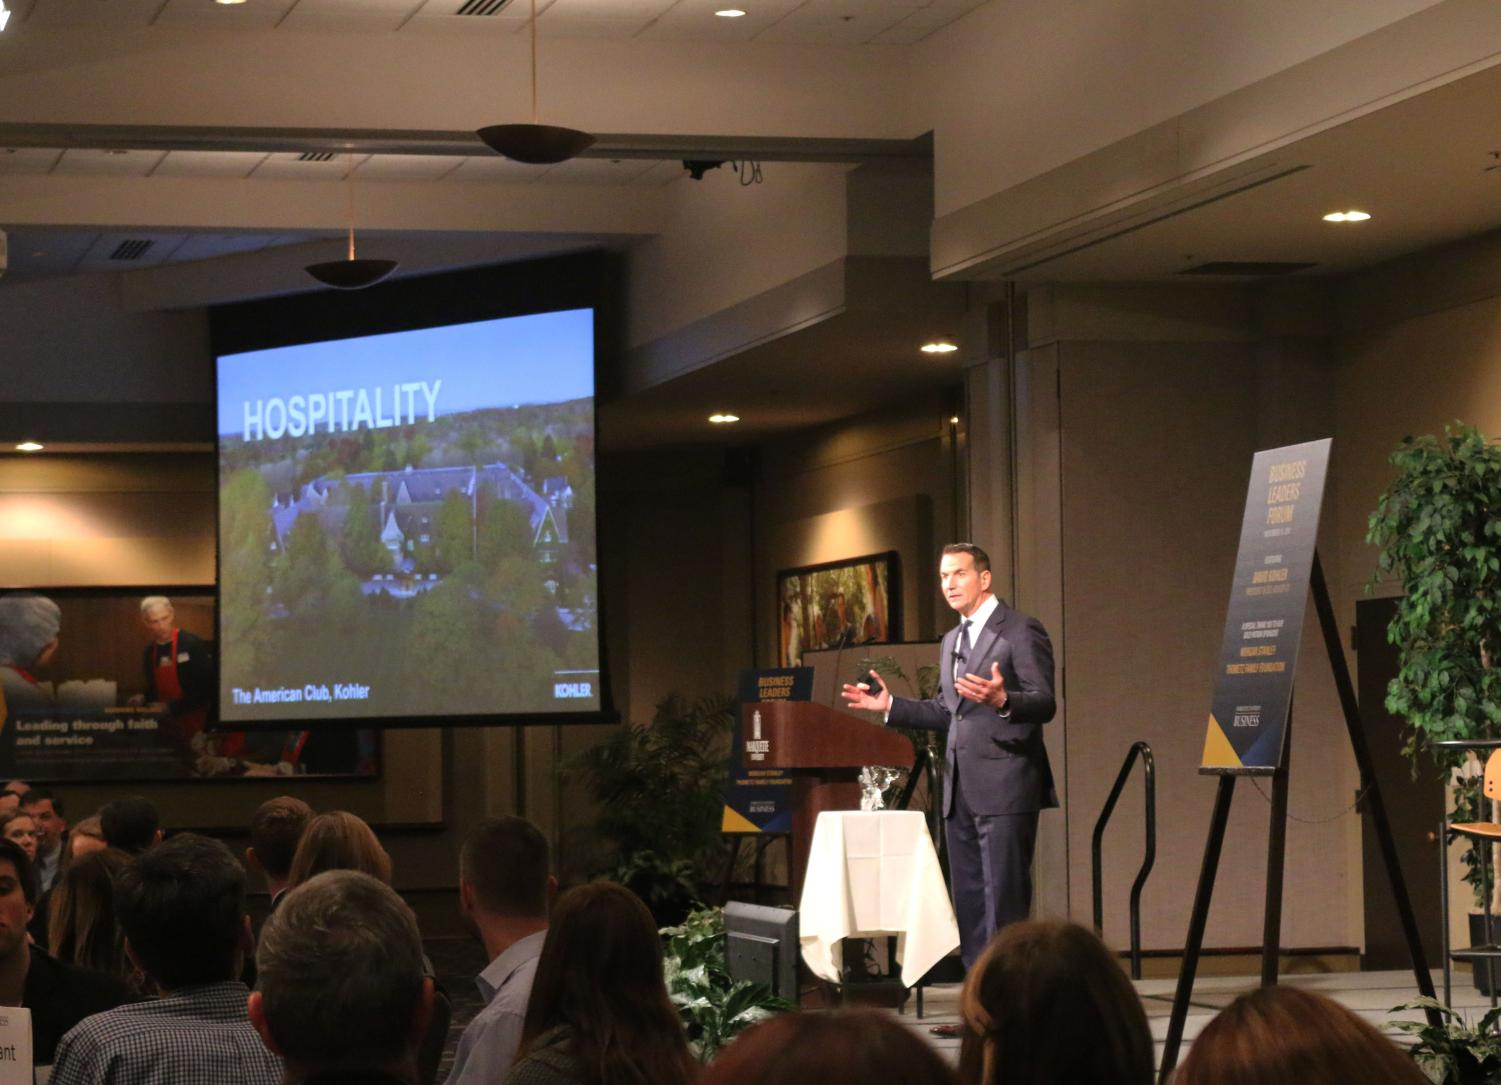 David Kohler, CEO of Kohler Corporation, spoke at the College of Business Administration's Business Leaders Forum last Thursday. The event was open to Marquette University students, faculty, staff and community members.